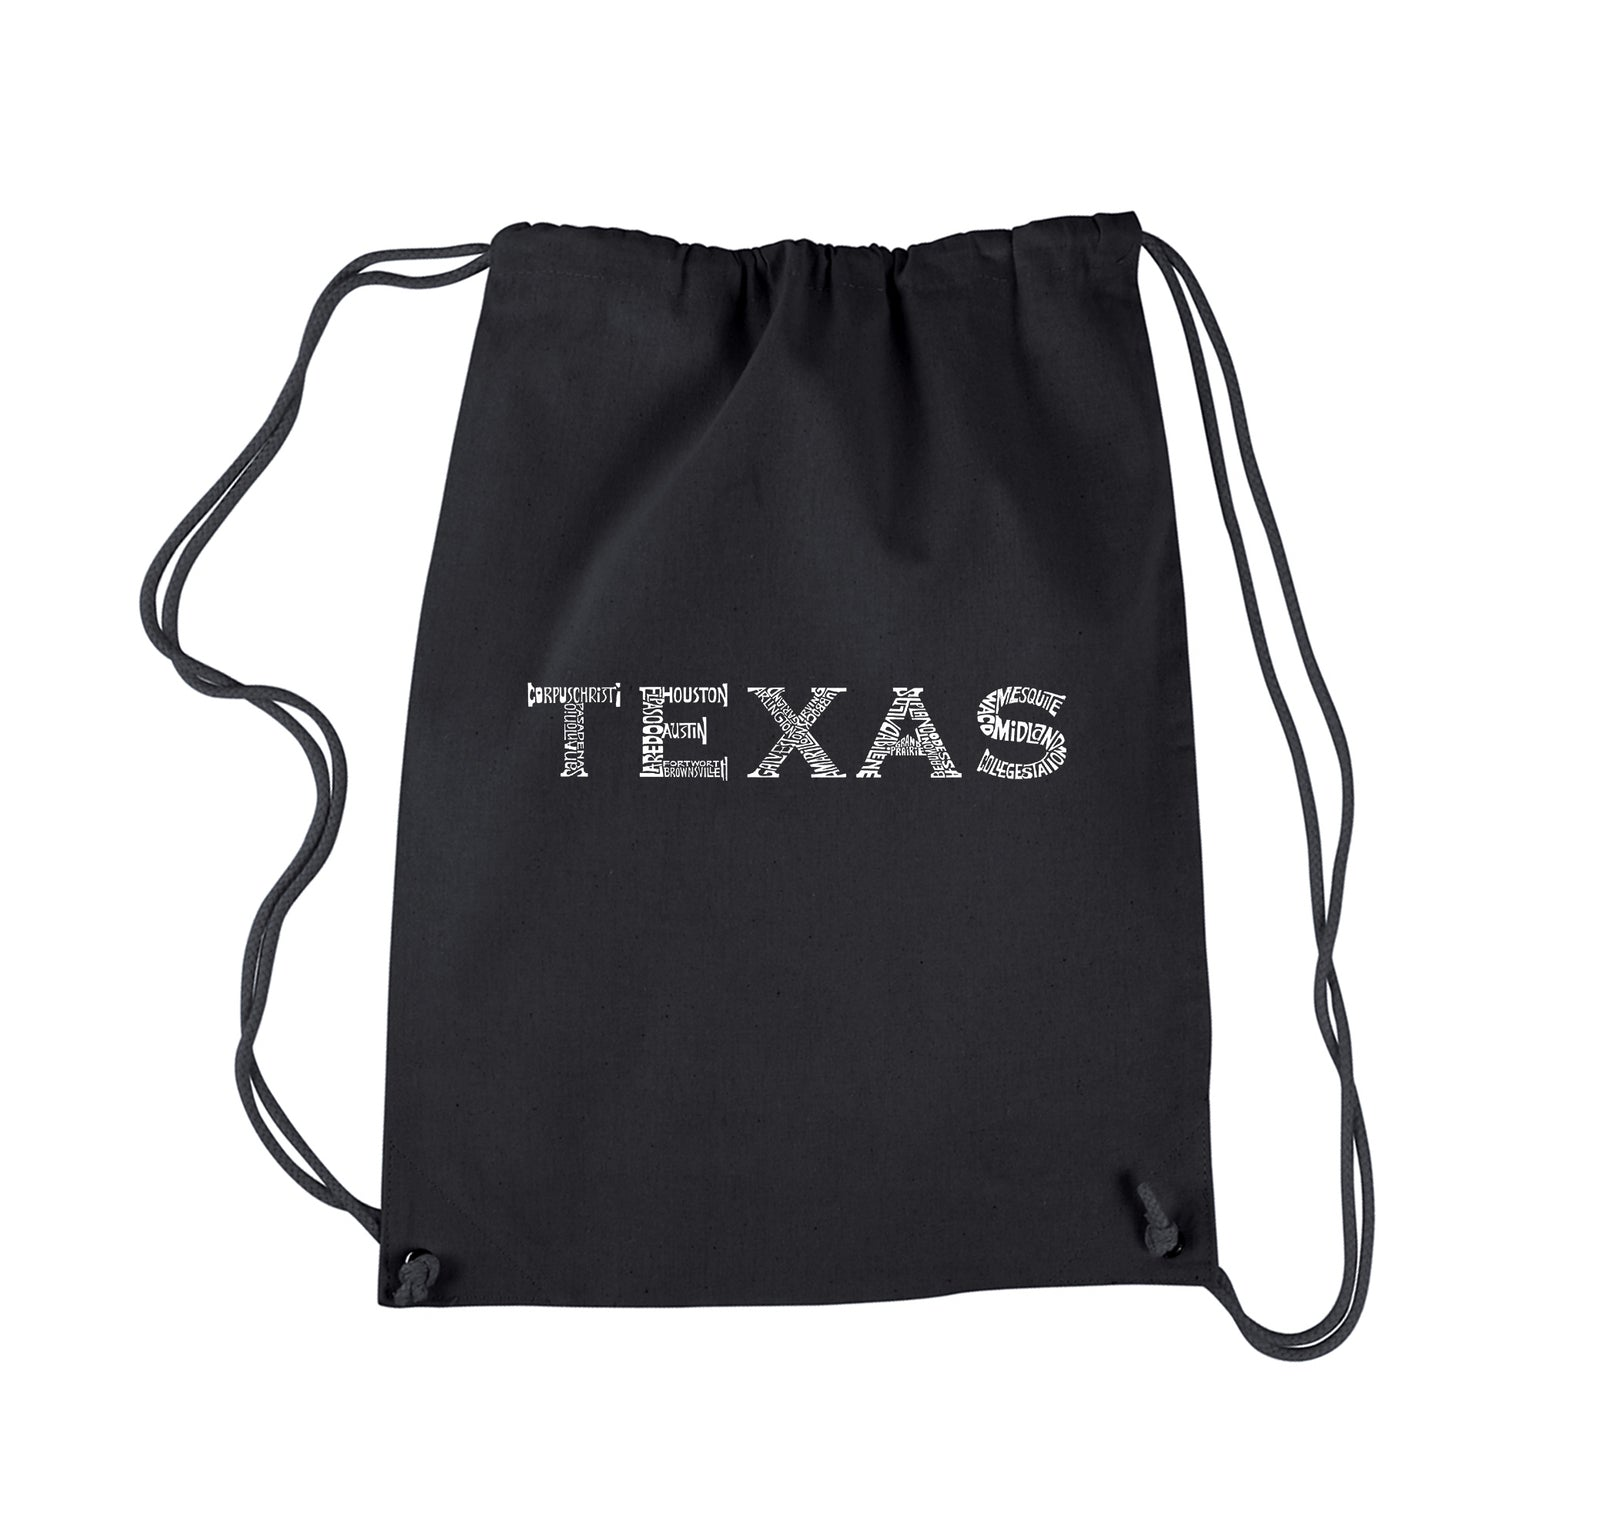 Drawstring Backpack - THE GREAT CITIES OF TEXAS